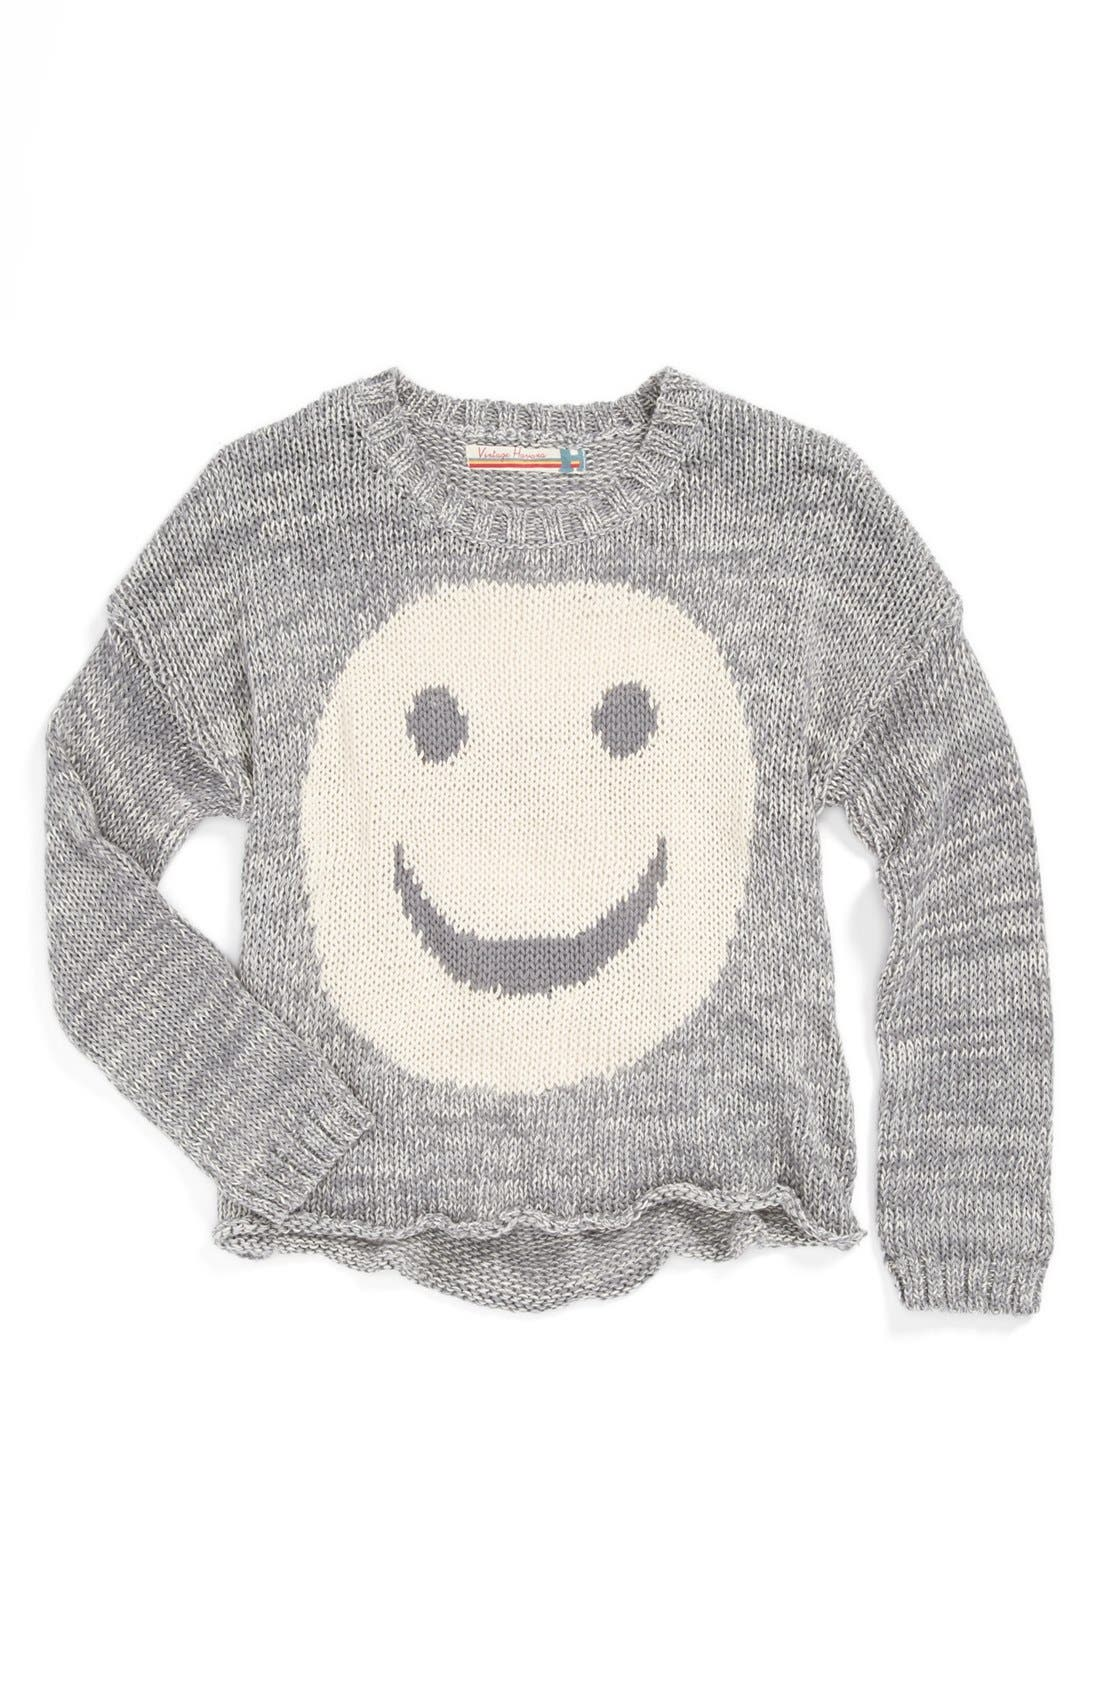 Alternate Image 1 Selected - Vintage Havana 'Big Smiley' Sweater (Little Girls & Big Girls)